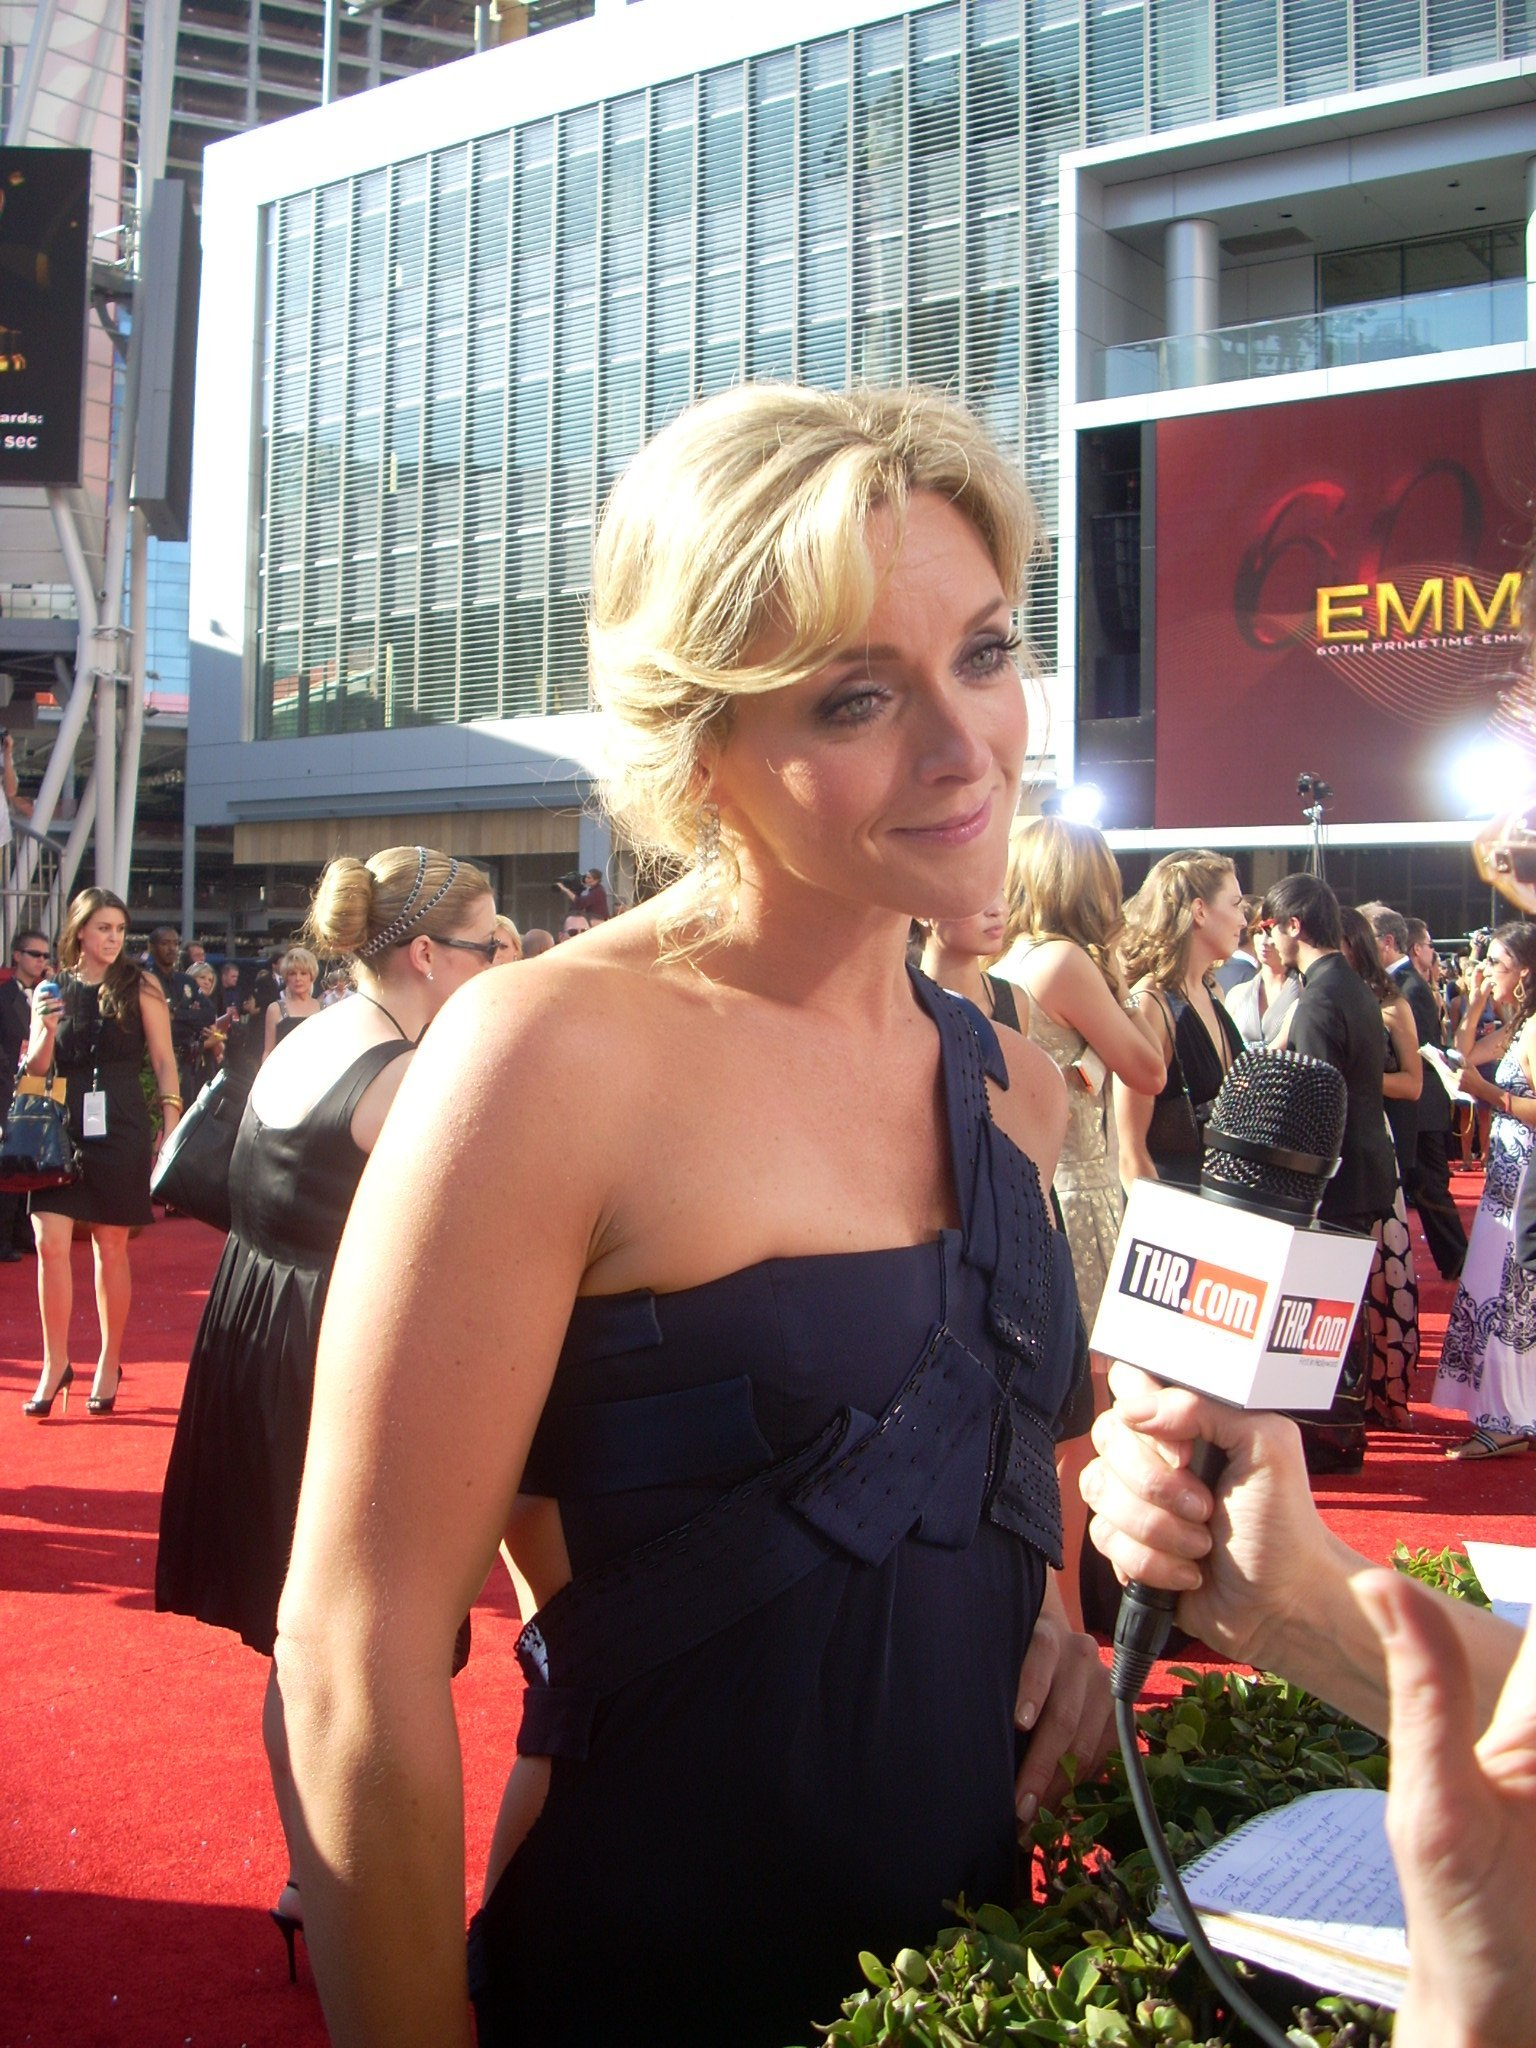 Jane Krakowski on the red carpet of the 60th Annual Emmy Awards in Los Angeles, California on September 21, 2008 | Photo: By watchwithkristin - Jane Krakowski, CC BY-SA 2.0 Wikimedia Commons